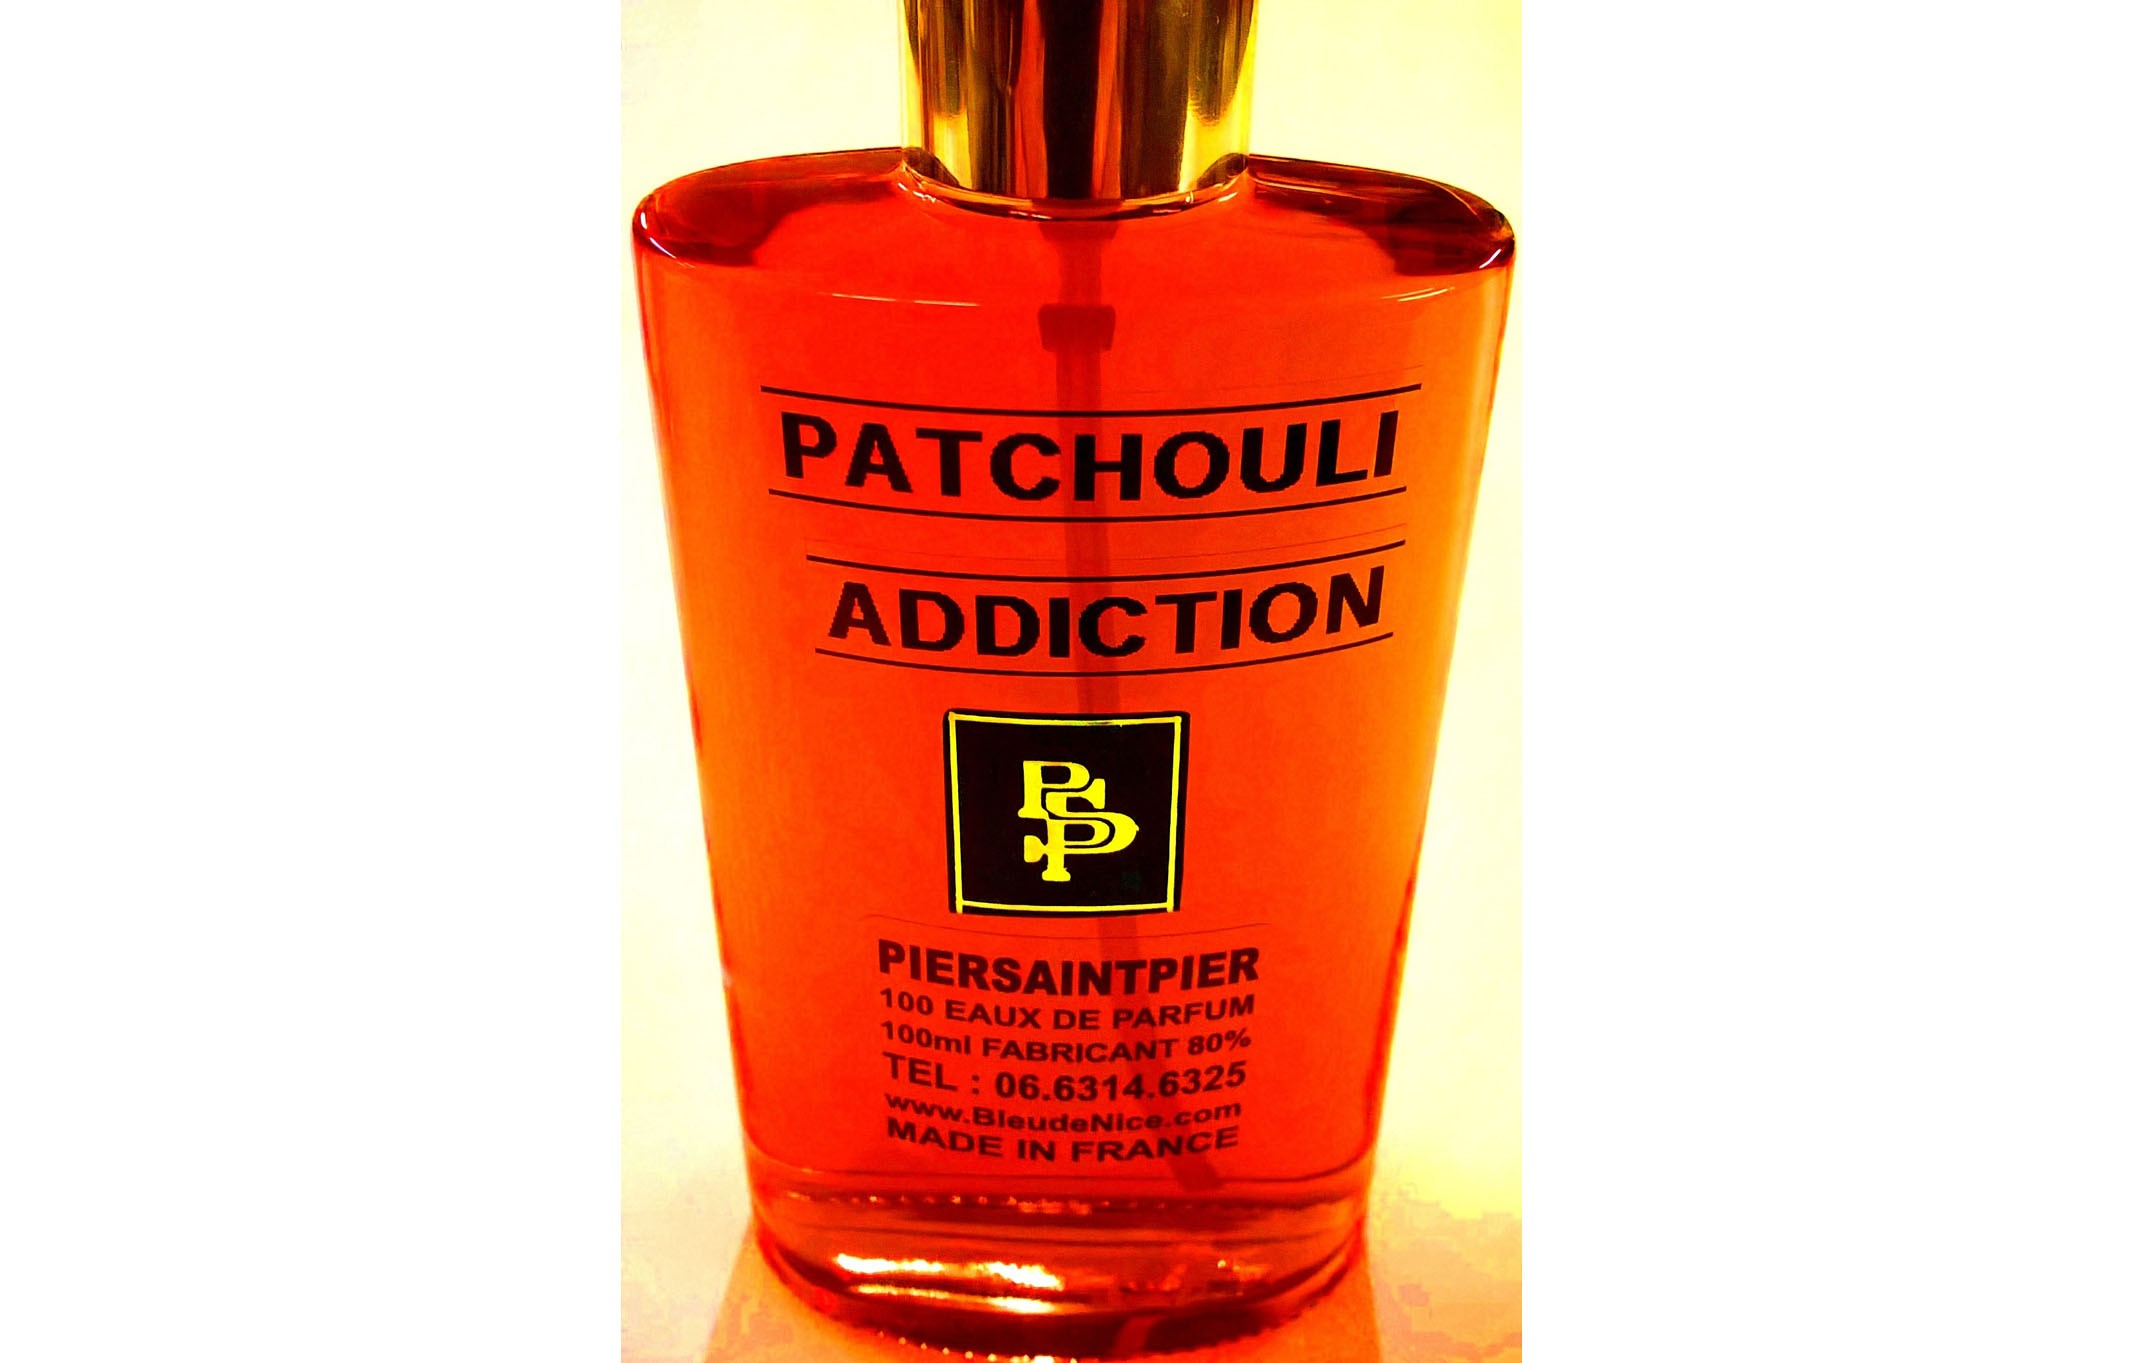 Patchouli Addiction - Flacon Simple 100ml sans Boite